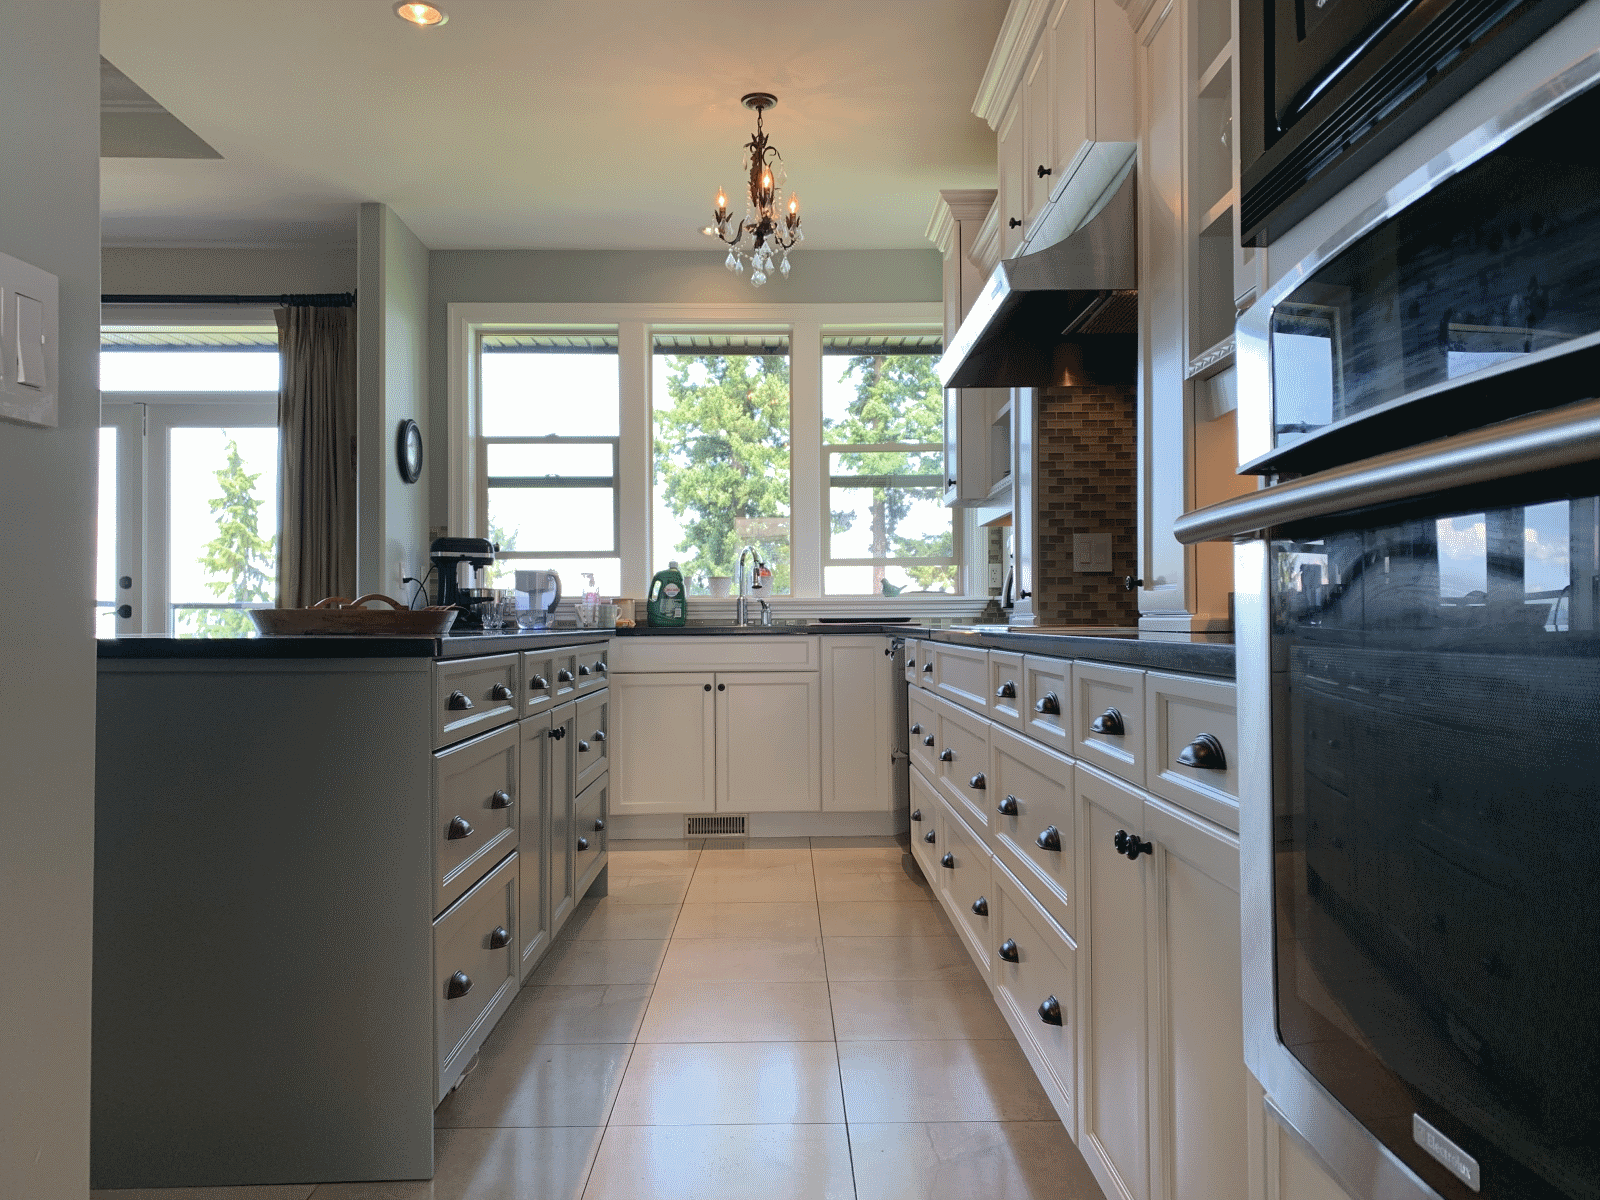 Kitchen cabinet refinishing Nanaimo BC